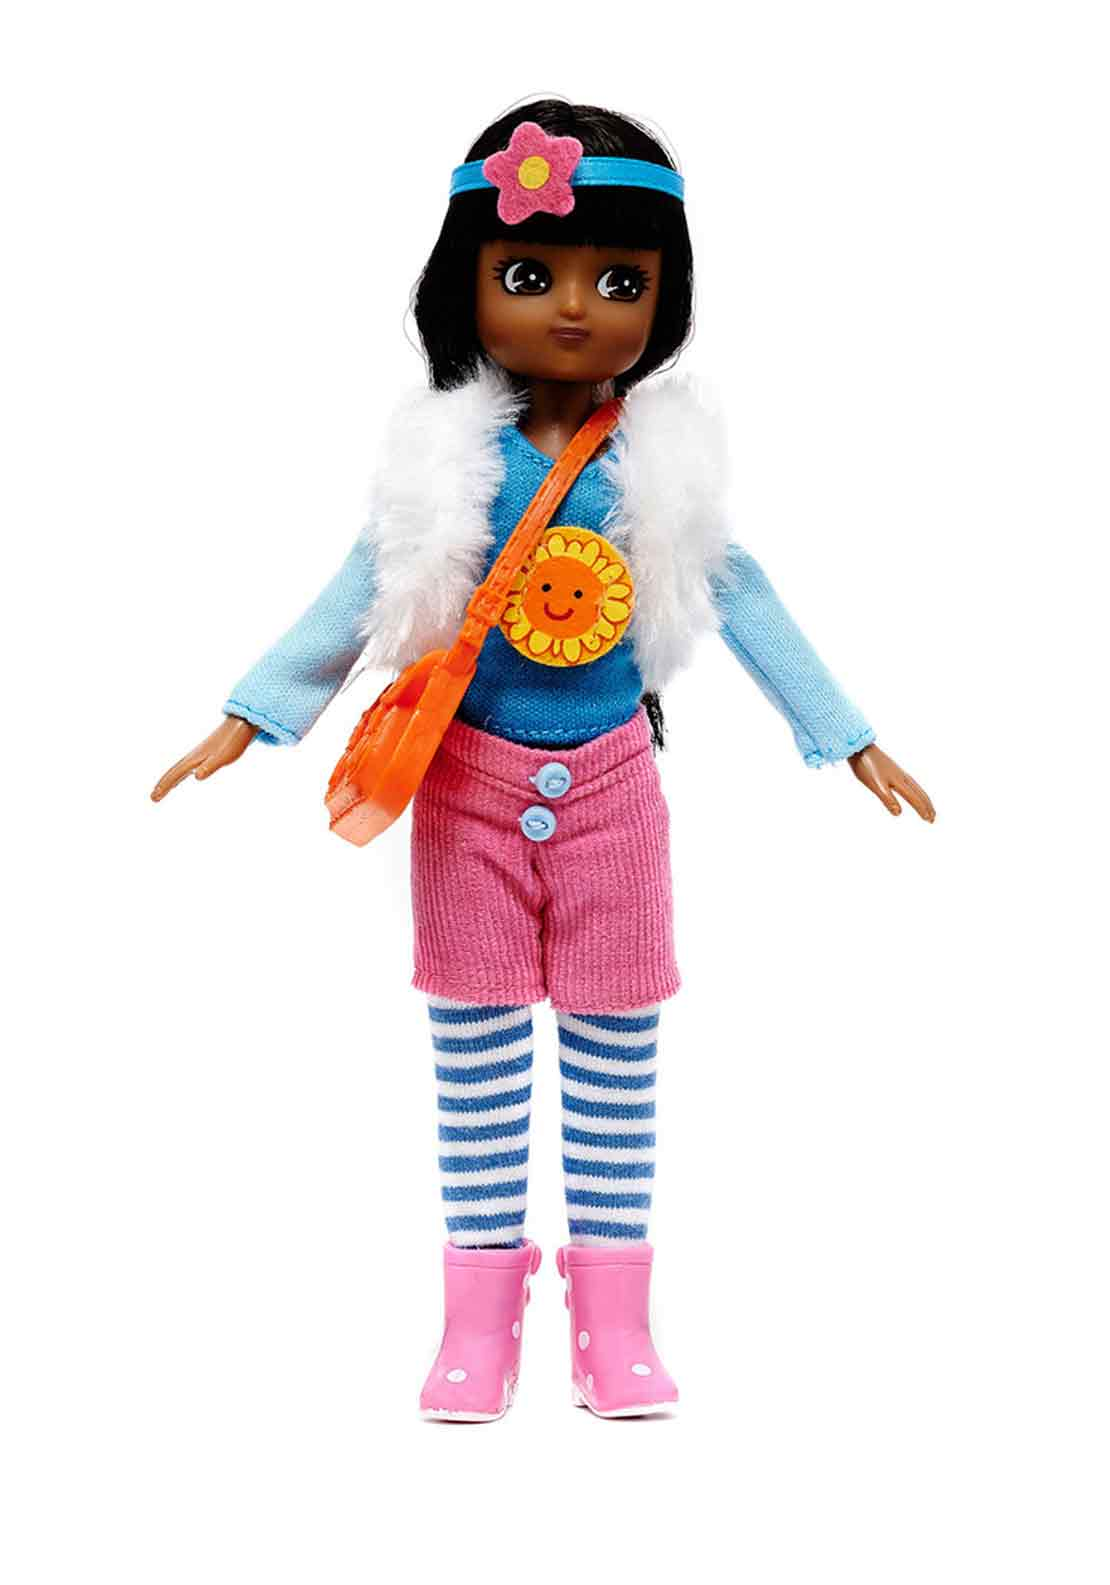 Lottie Dolls Lottieville Festival